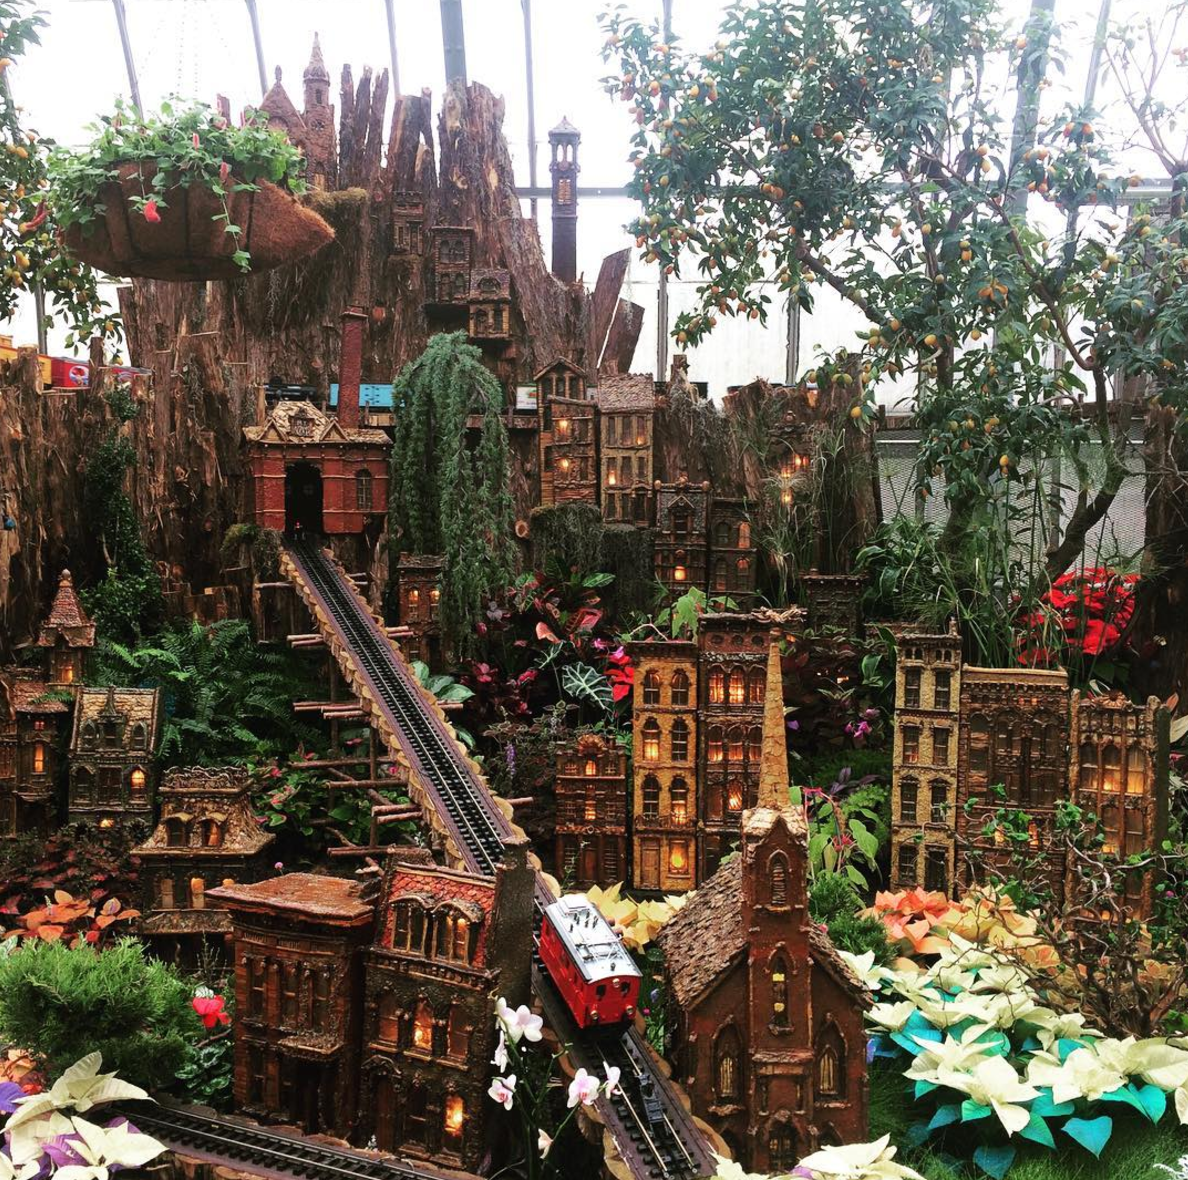 Photo by @realfoodbrandae at Krohn Conservatory in Cincinnati, Ohio